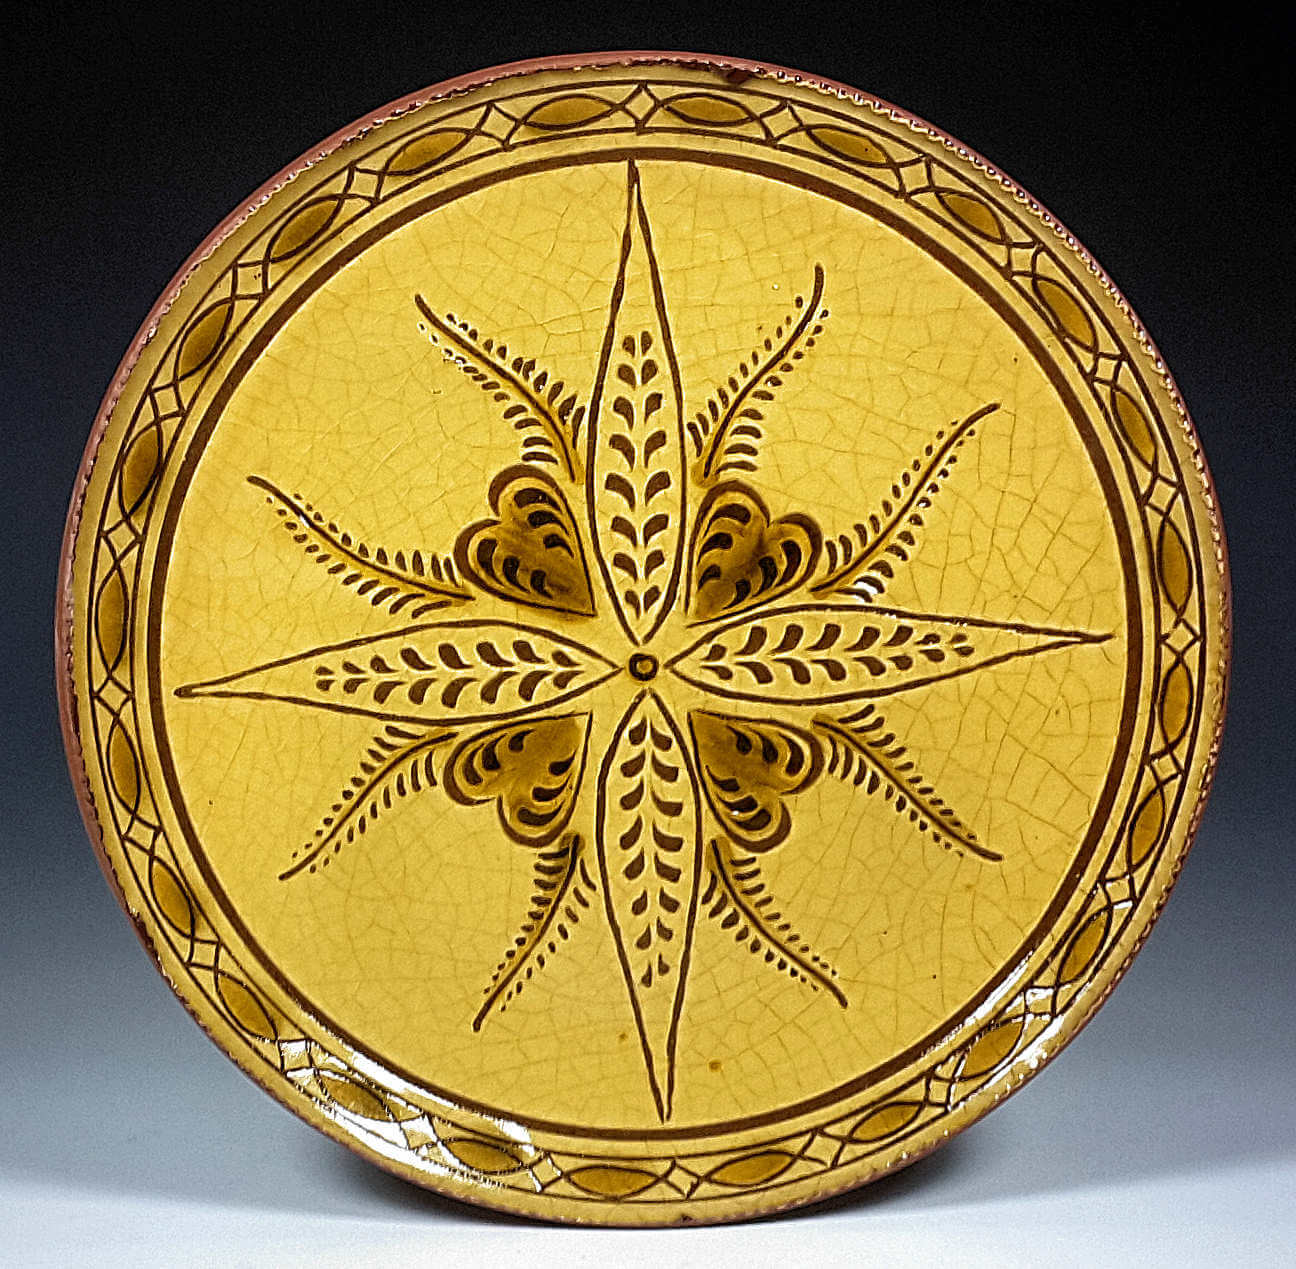 Round Plate, Sgraffito, Vine and Leaf